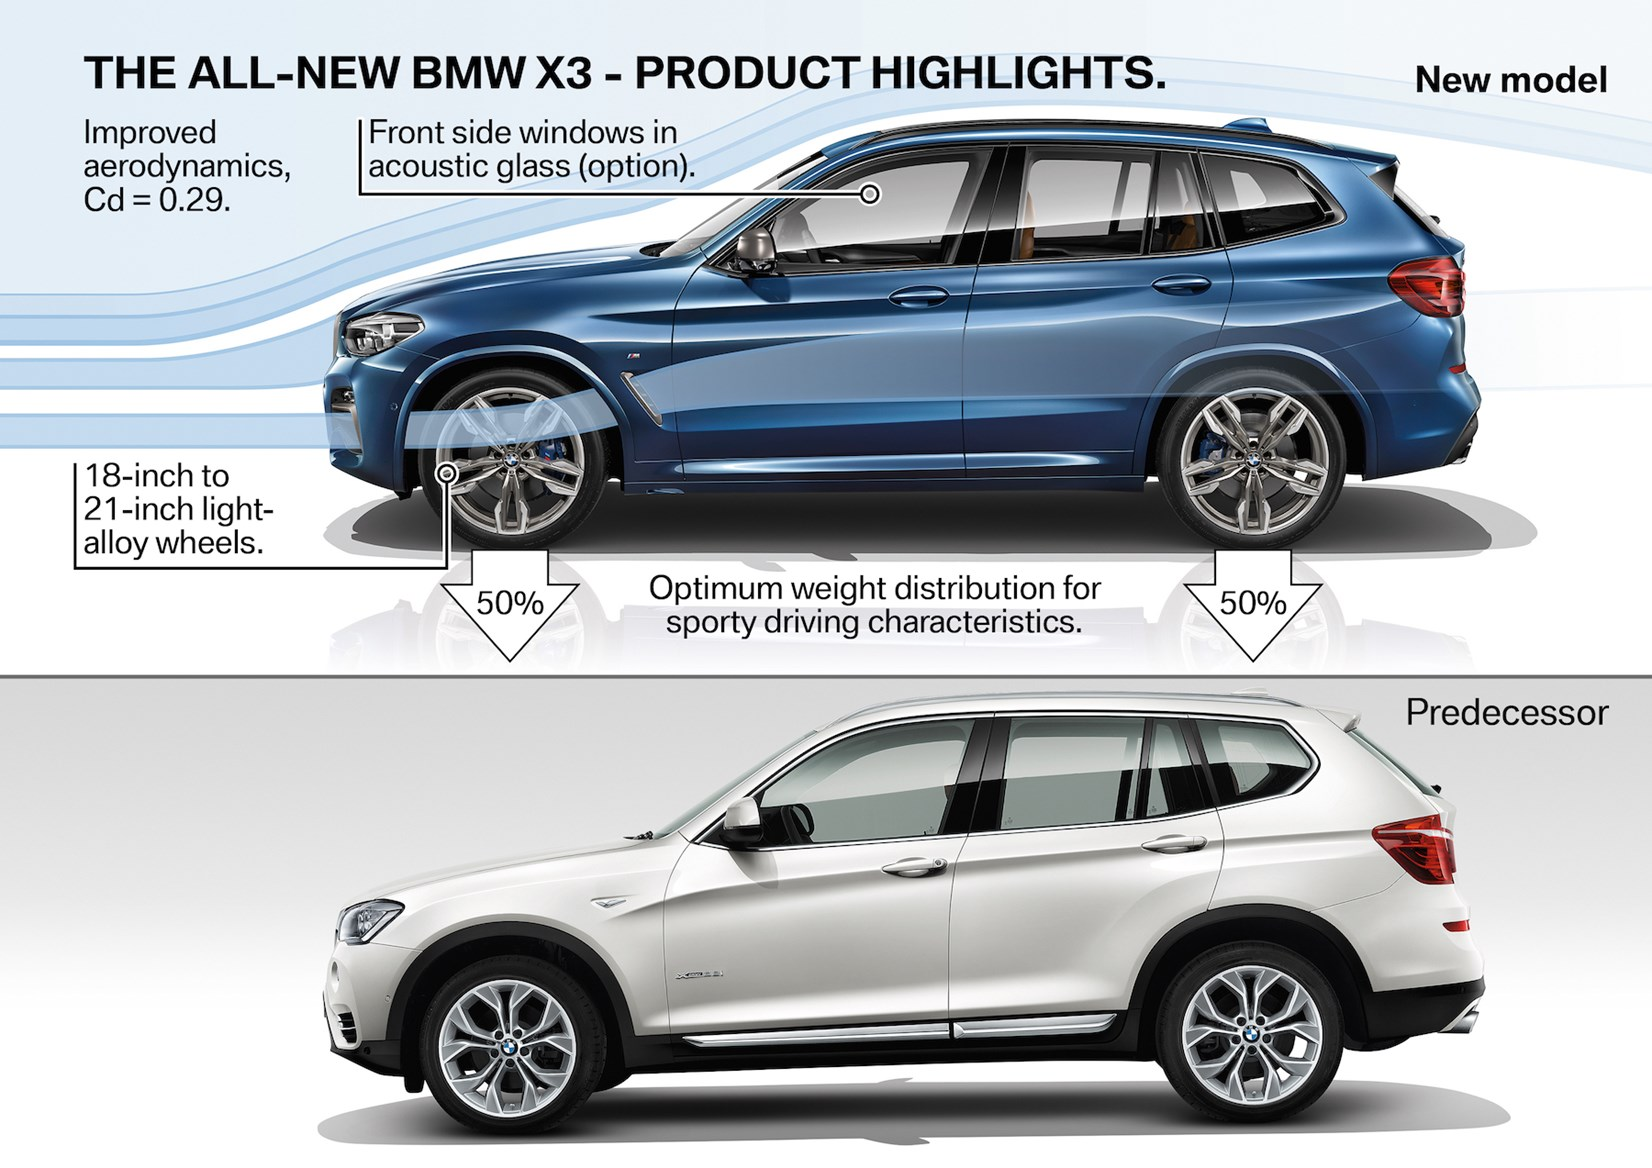 2017 BMW X3 revealed – it's like the last one, but better | Parkers